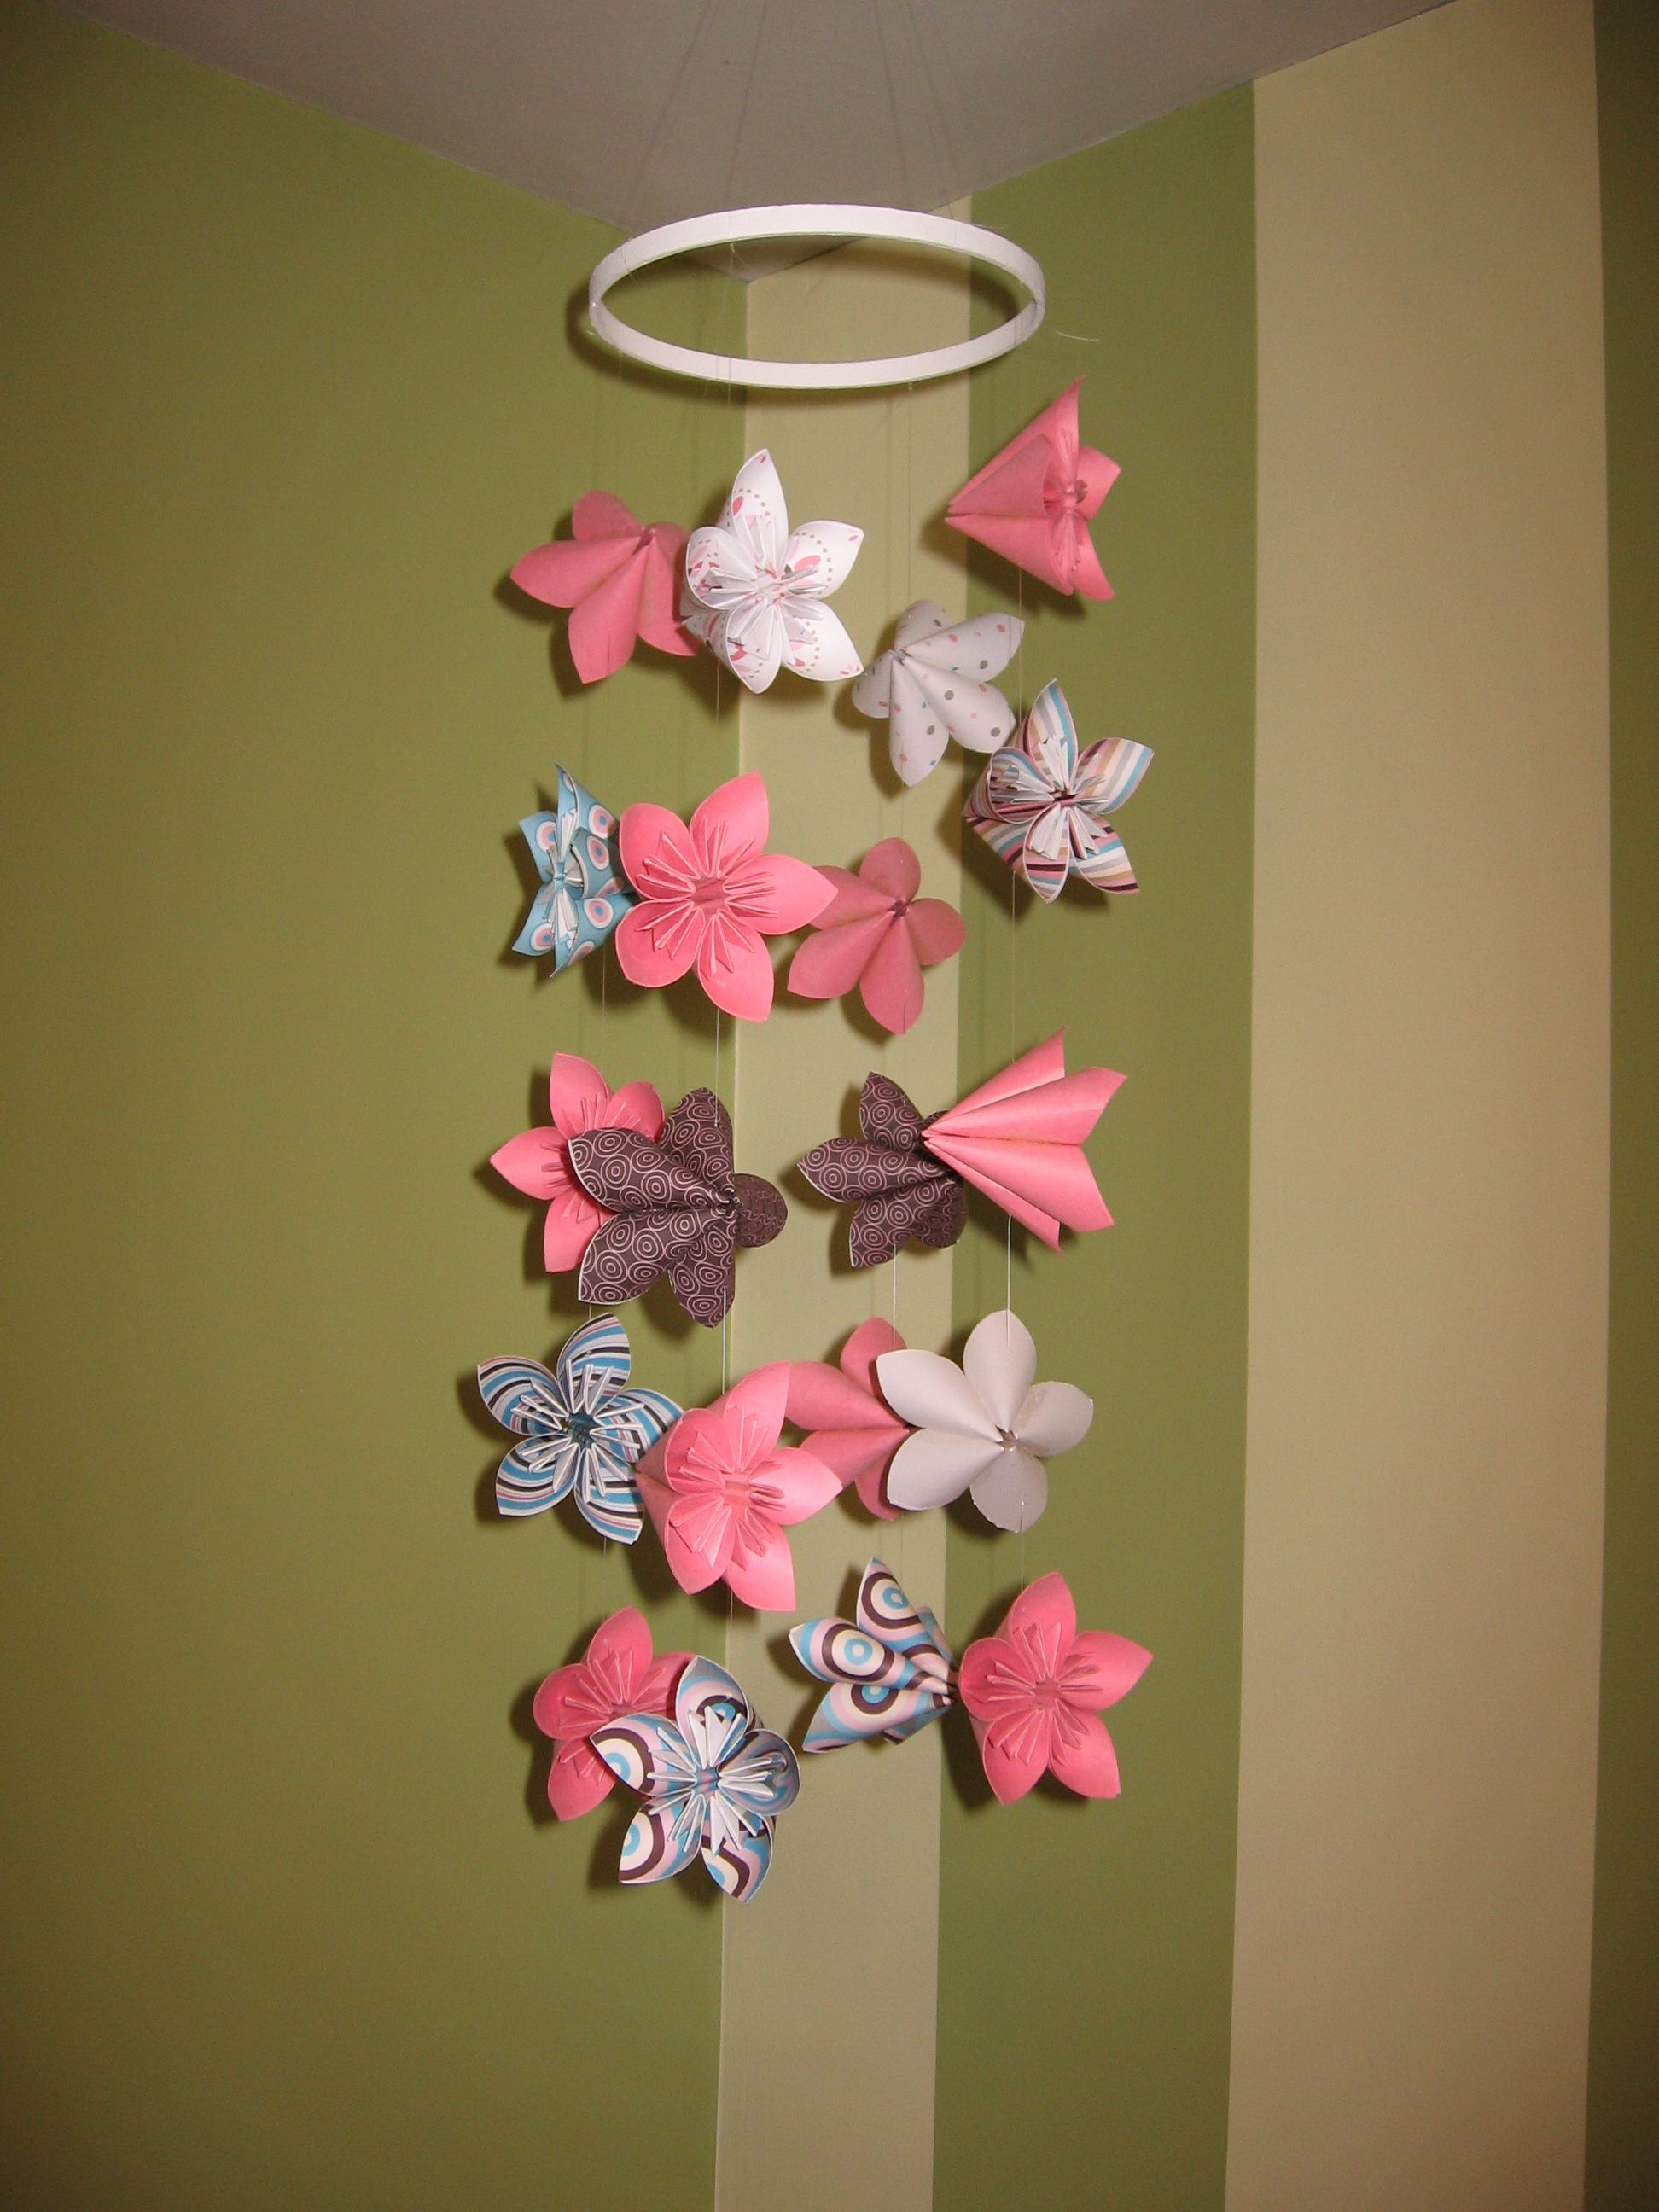 Origami Flower Baby Mobile Fold The Oragami Flowers Then Use Fishing Line To Tie Together And Paint An Embroidery Hoop